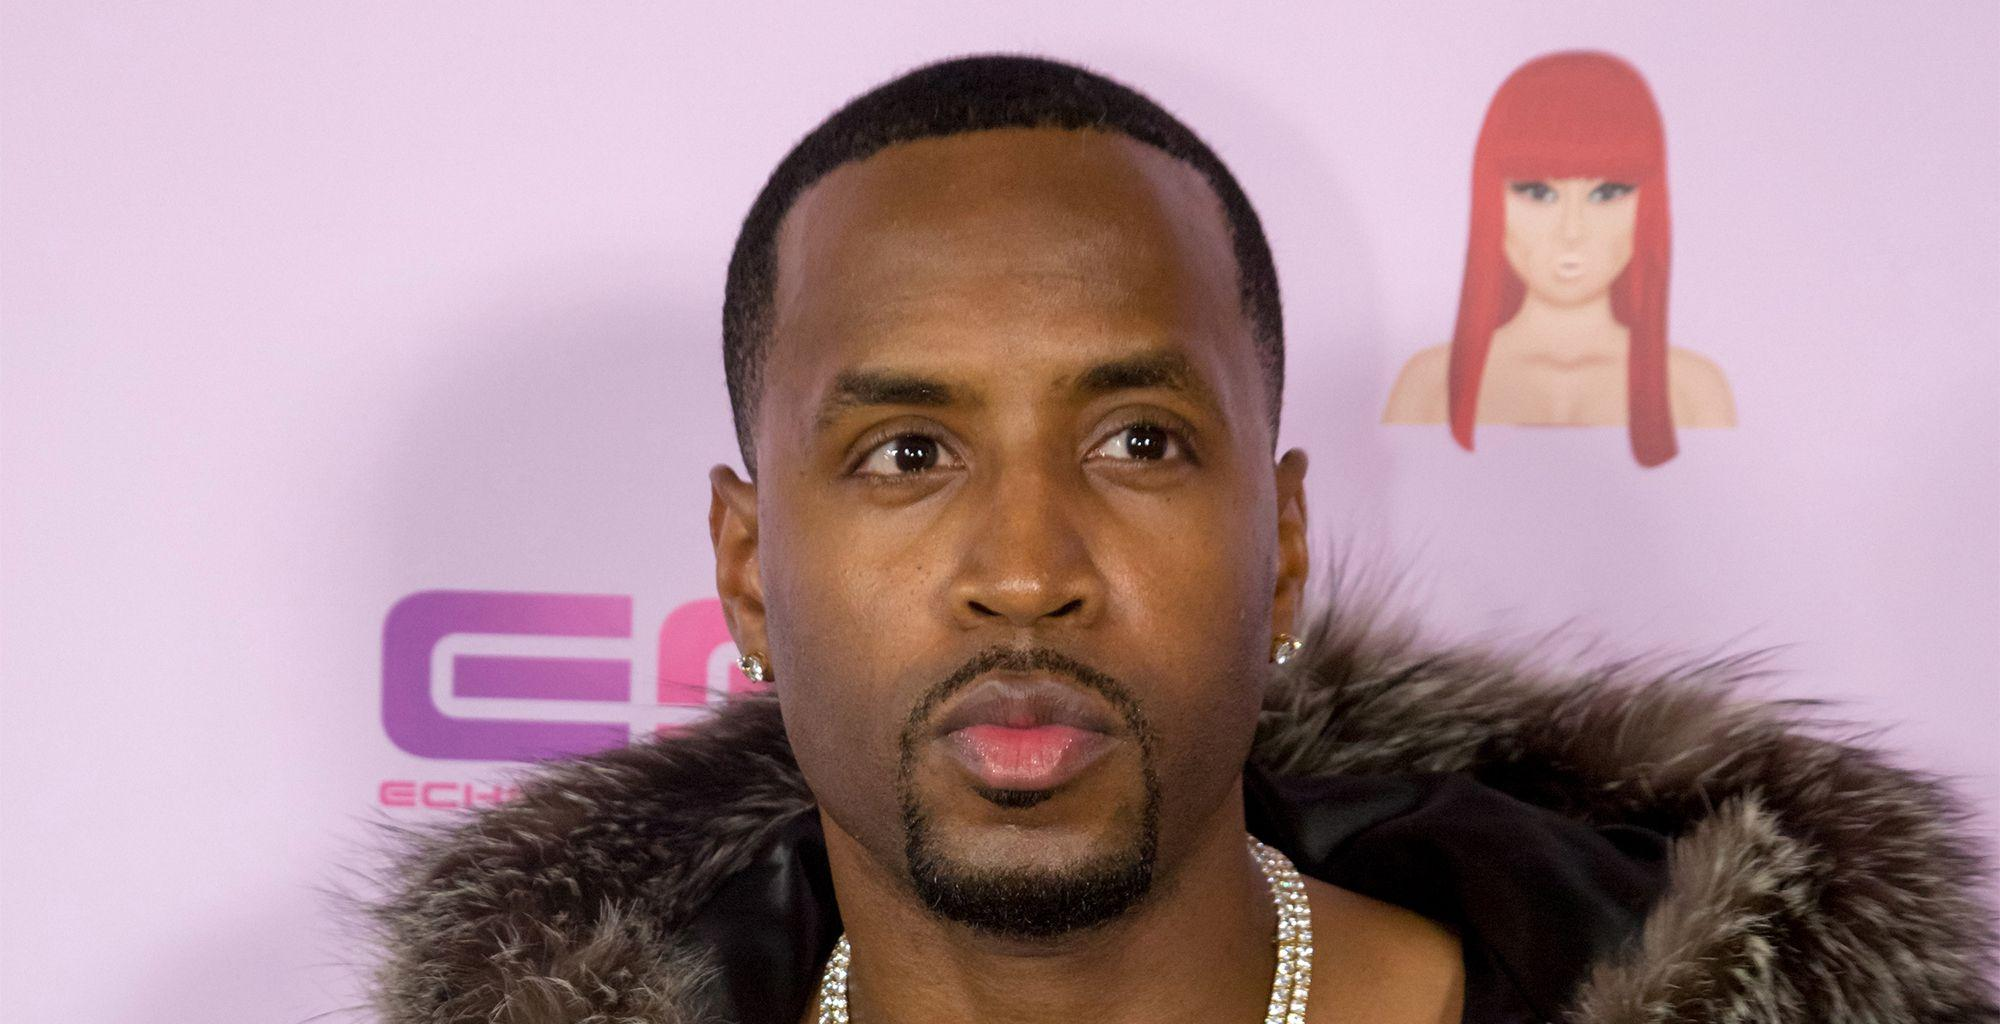 Safaree's Latest Video Upsets Fans: 'Your Daughter Would Be So Proud Watching This'